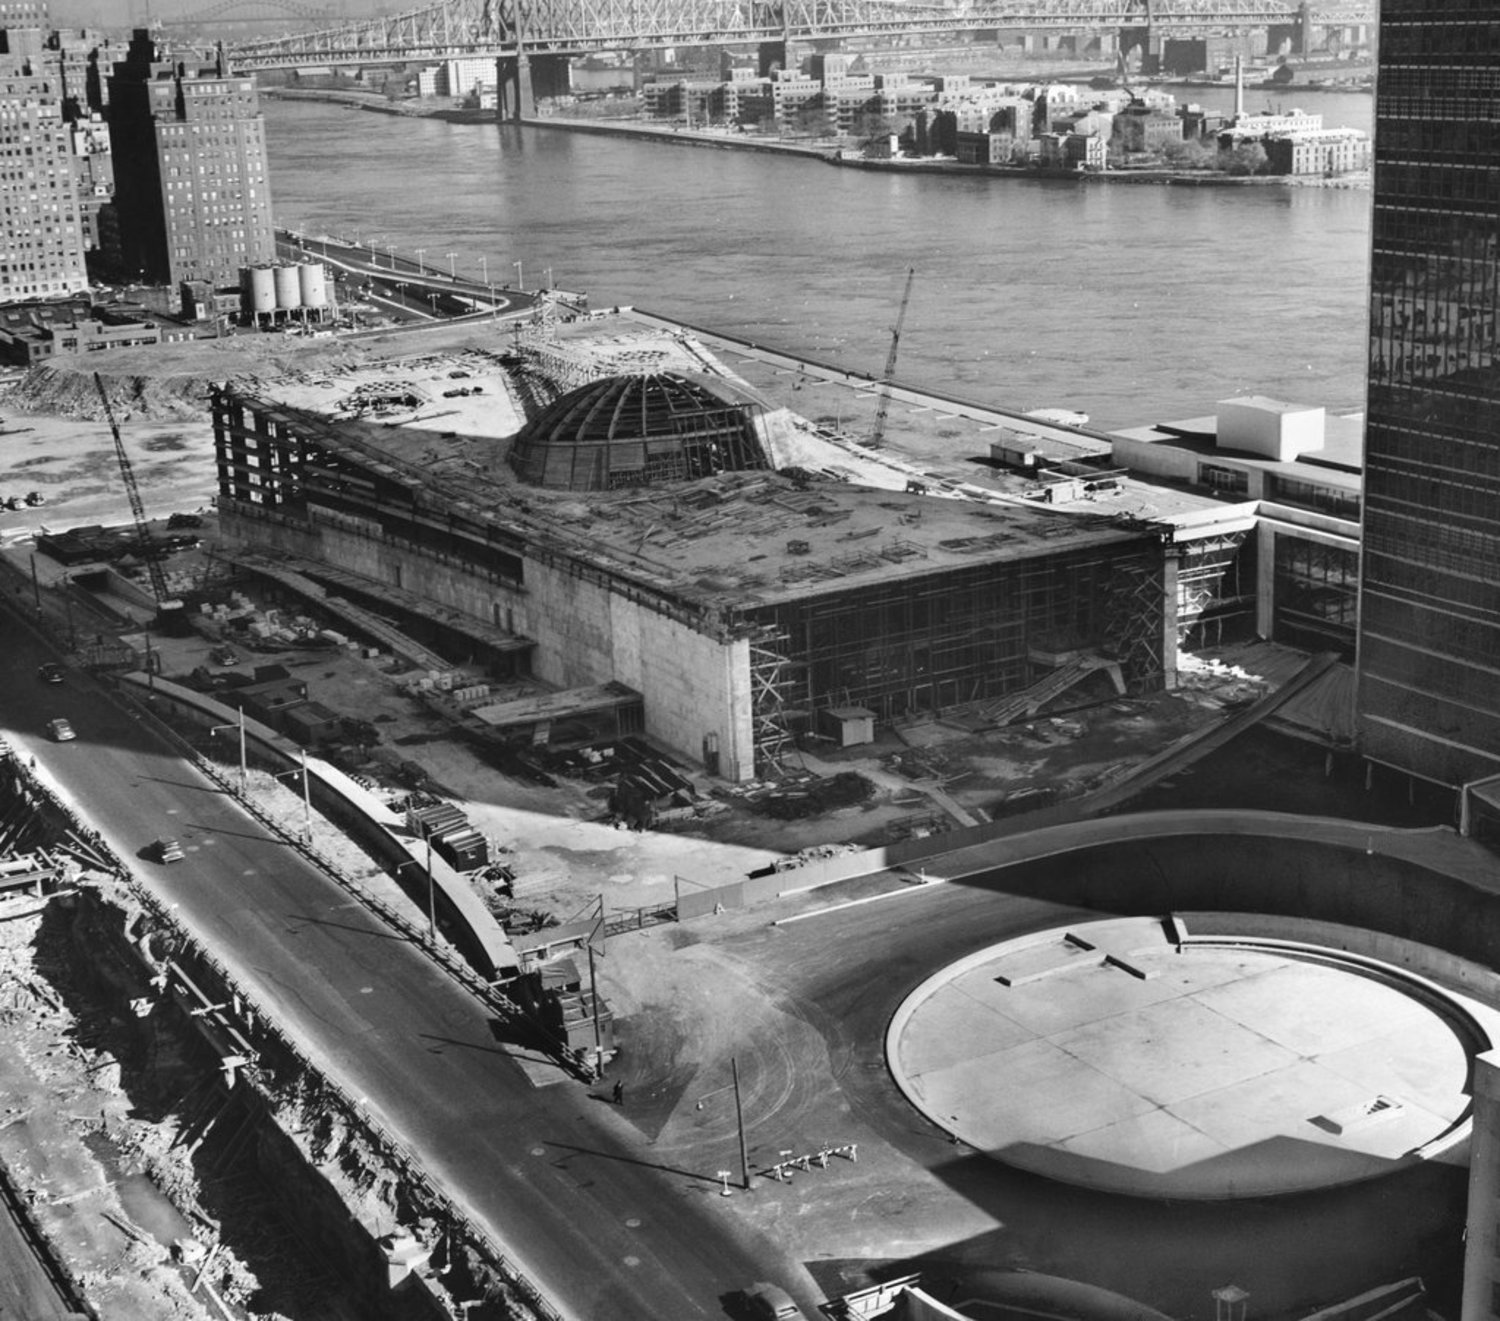 Nov. 11, 1951: Photos showed progress in the construction of a Robert Moses project, the General Assembly Building of the United Nations, a couple of years behind schedule.